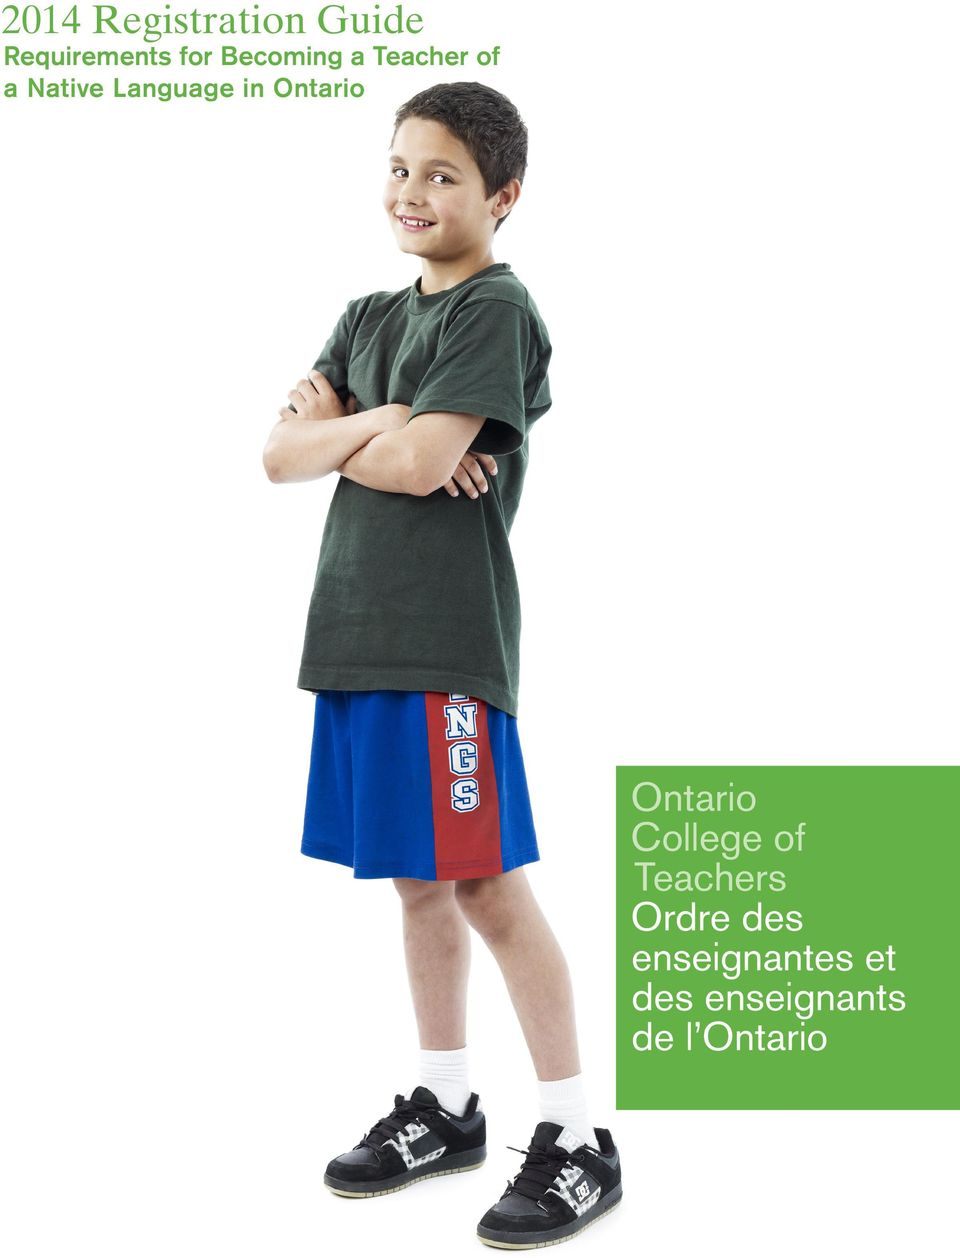 Ontario Ontario College of Teachers Ordre